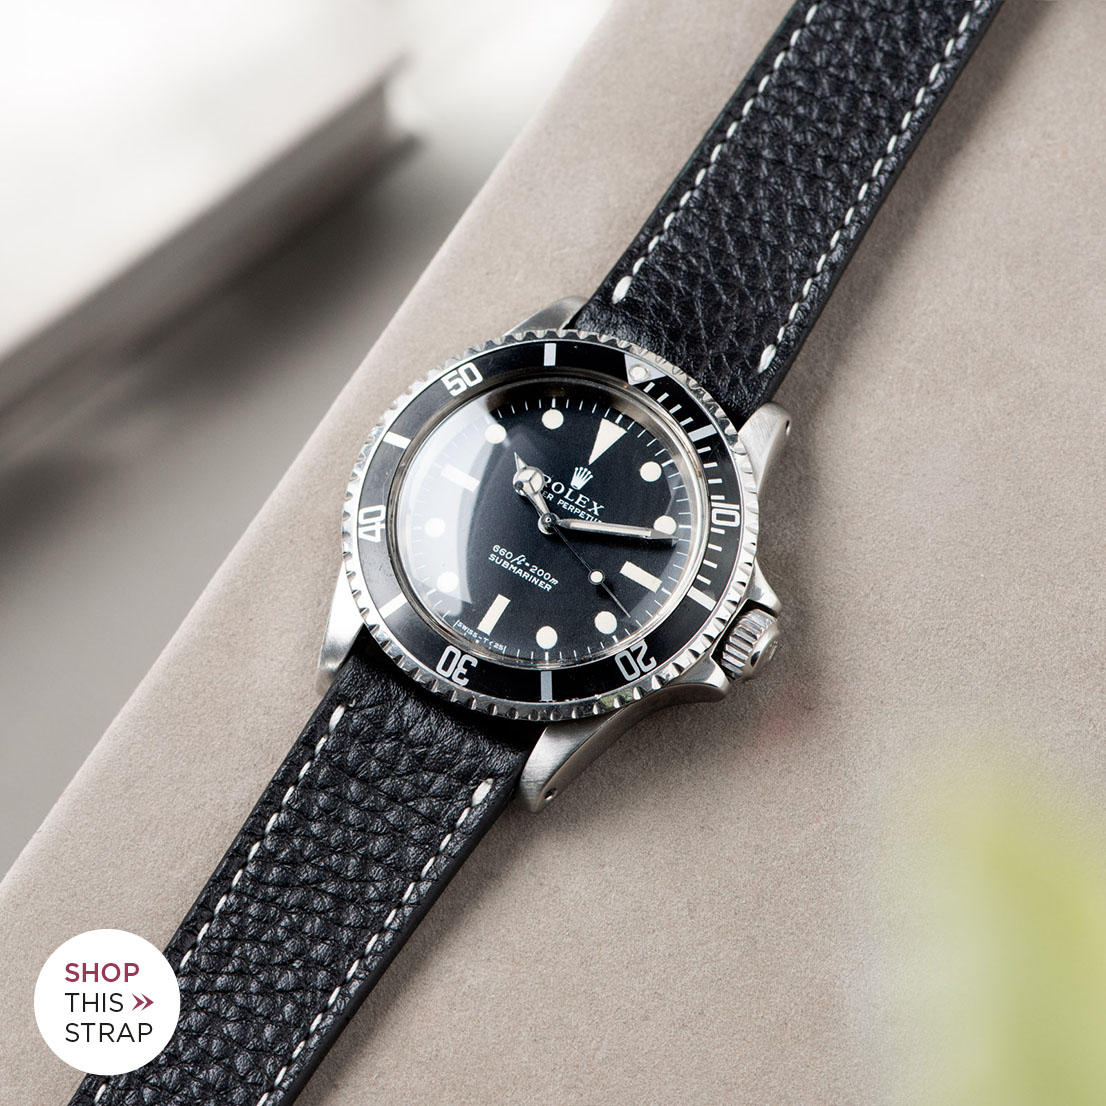 Bulang and Sons_Strap Guide_Rolex 5513 Submariner_RICH BLACK CREME STITCH LEATHER WATCH STRAP